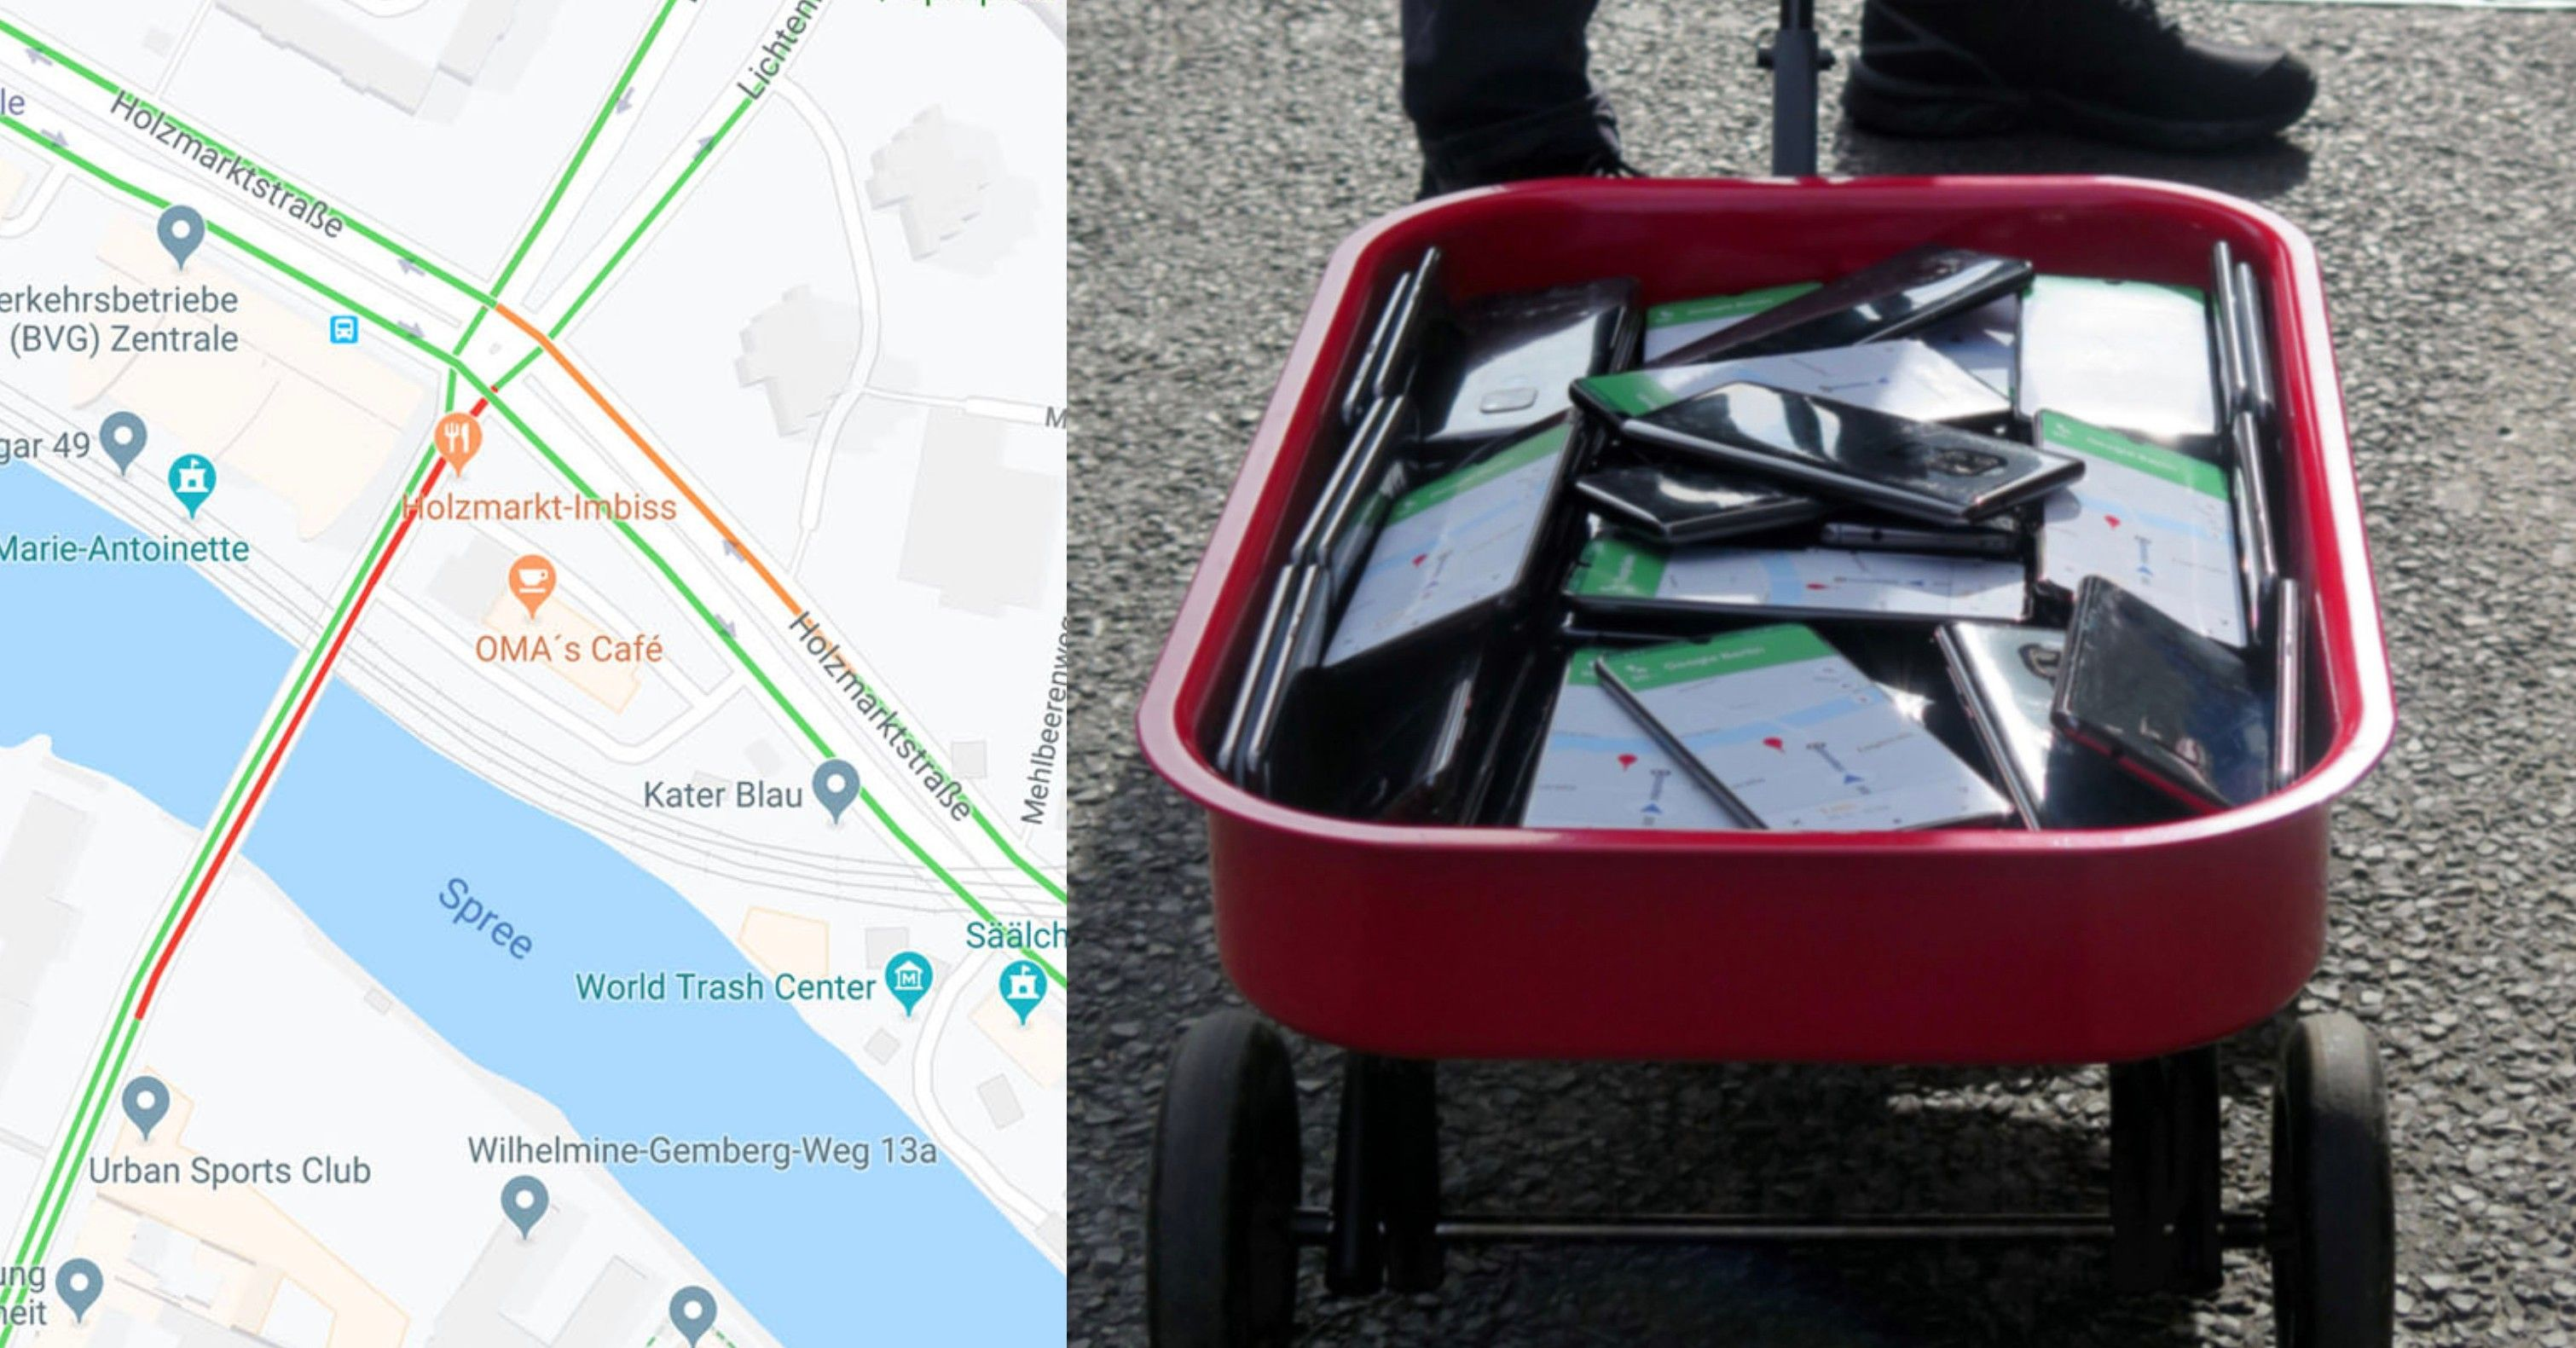 This Man Created Traffic Jams On Google Maps Using A Red Wagon Full Of Phones In 2020 Red Wagon Traffic Jam Traffic